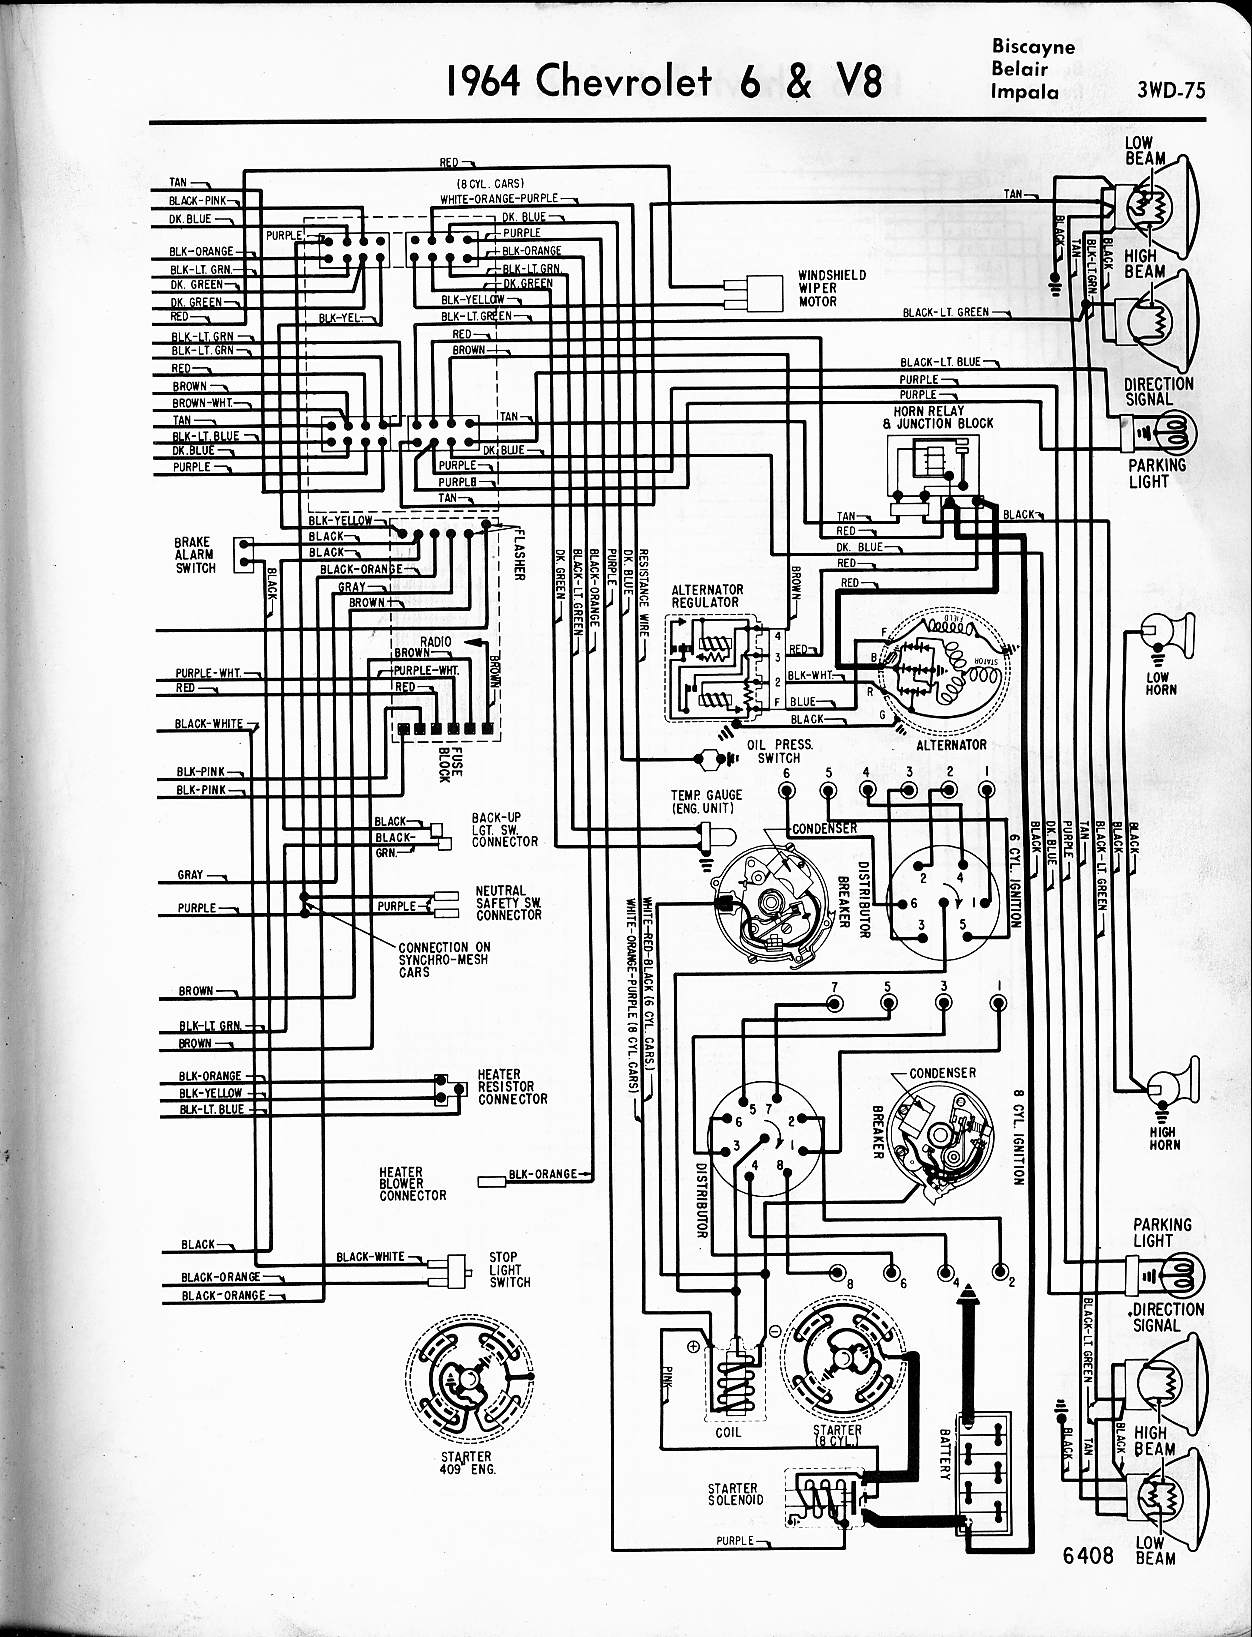 1970 Chevy C10 Wiring Diagram - Wiring Diagram For Chevy Impala Wiring - 1970 Chevy C10 Wiring Diagram